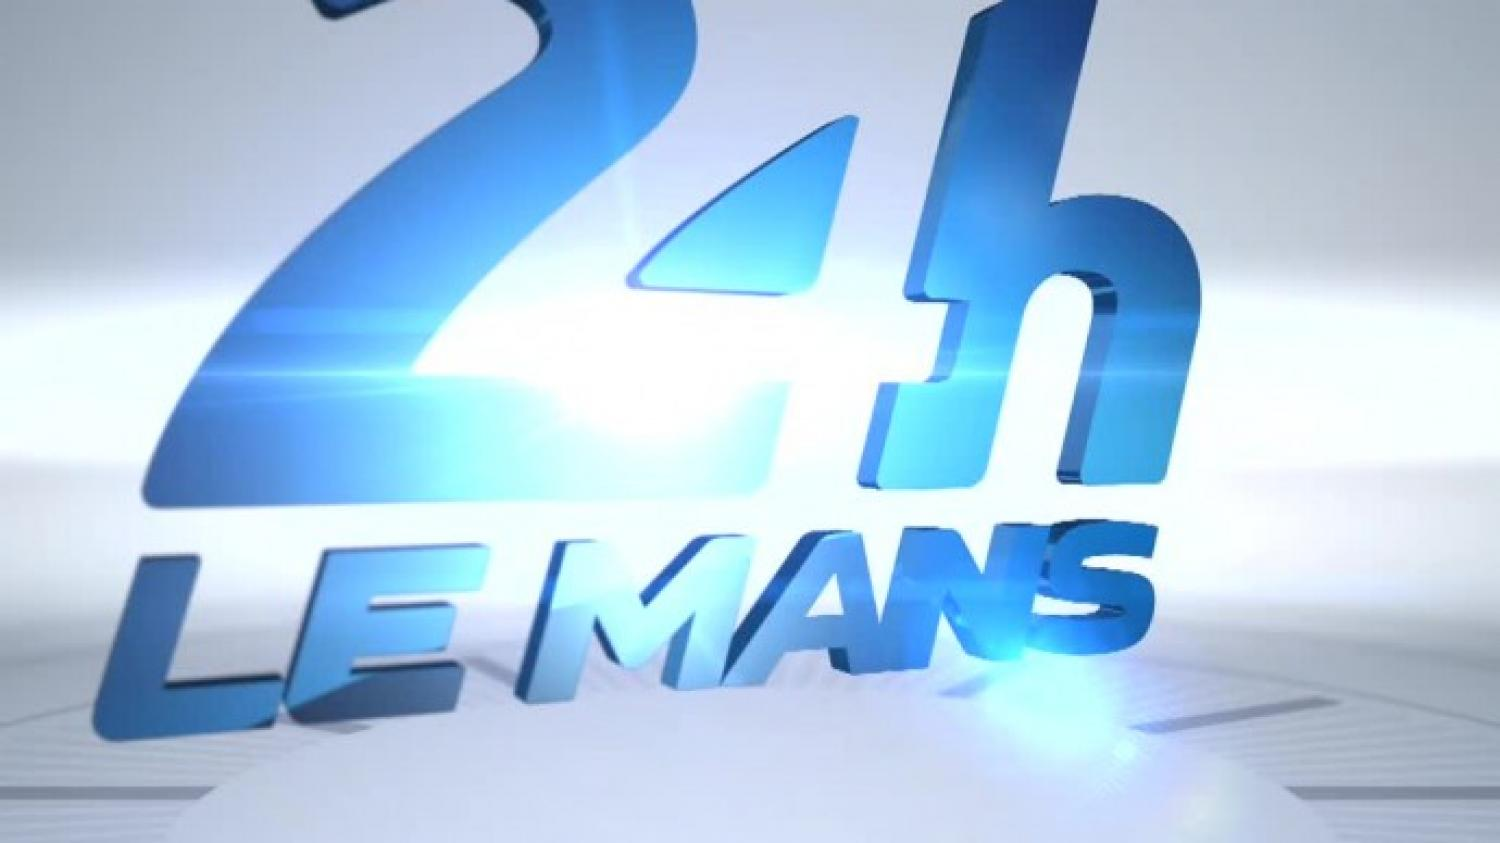 24 Hours of Le Mans - Highlights of the opening ceremony